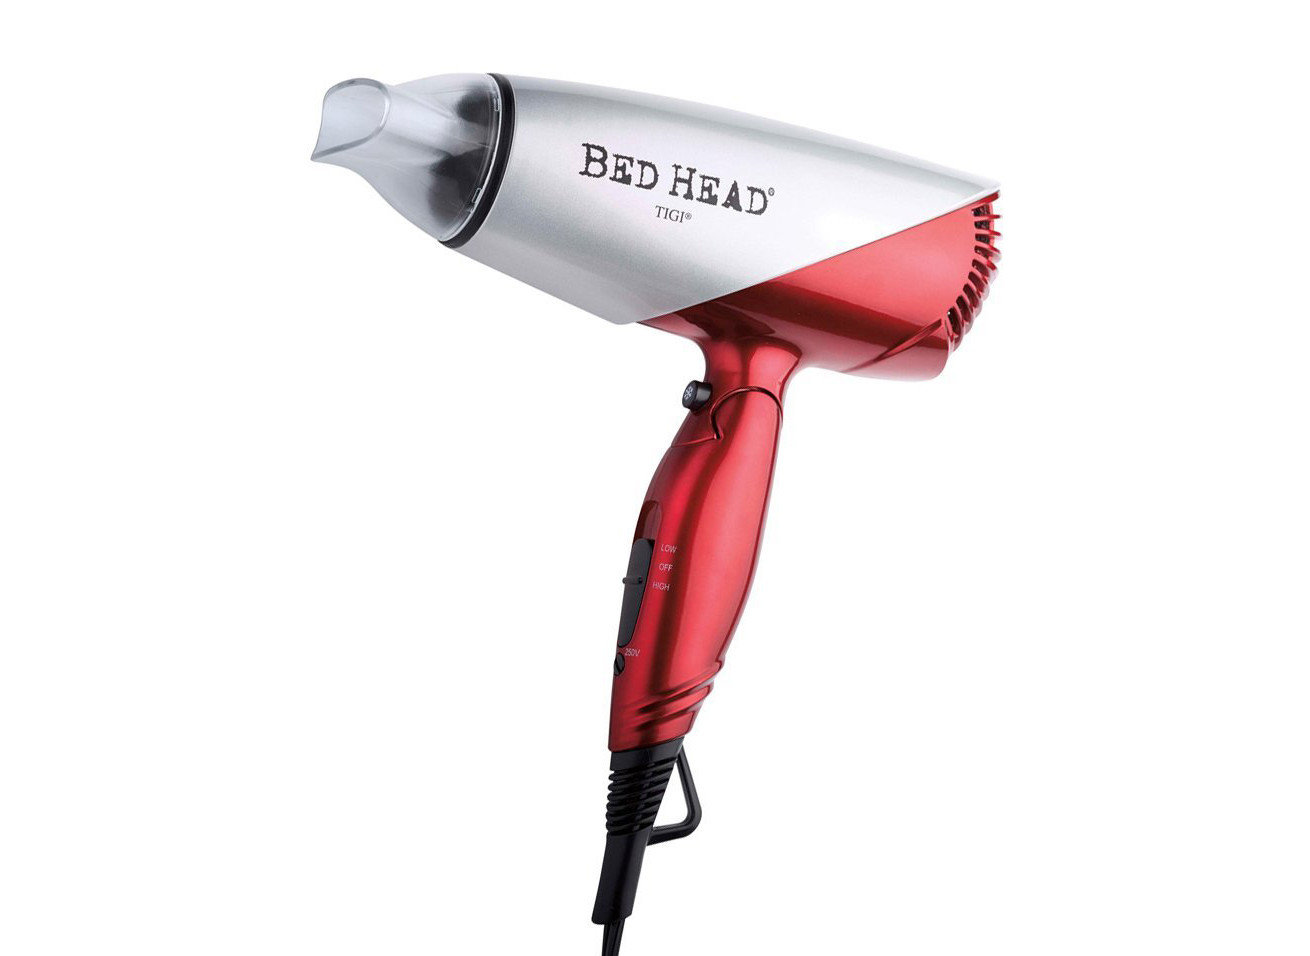 Style + Design appliance dryer hair dryer product mixer small appliance home appliance